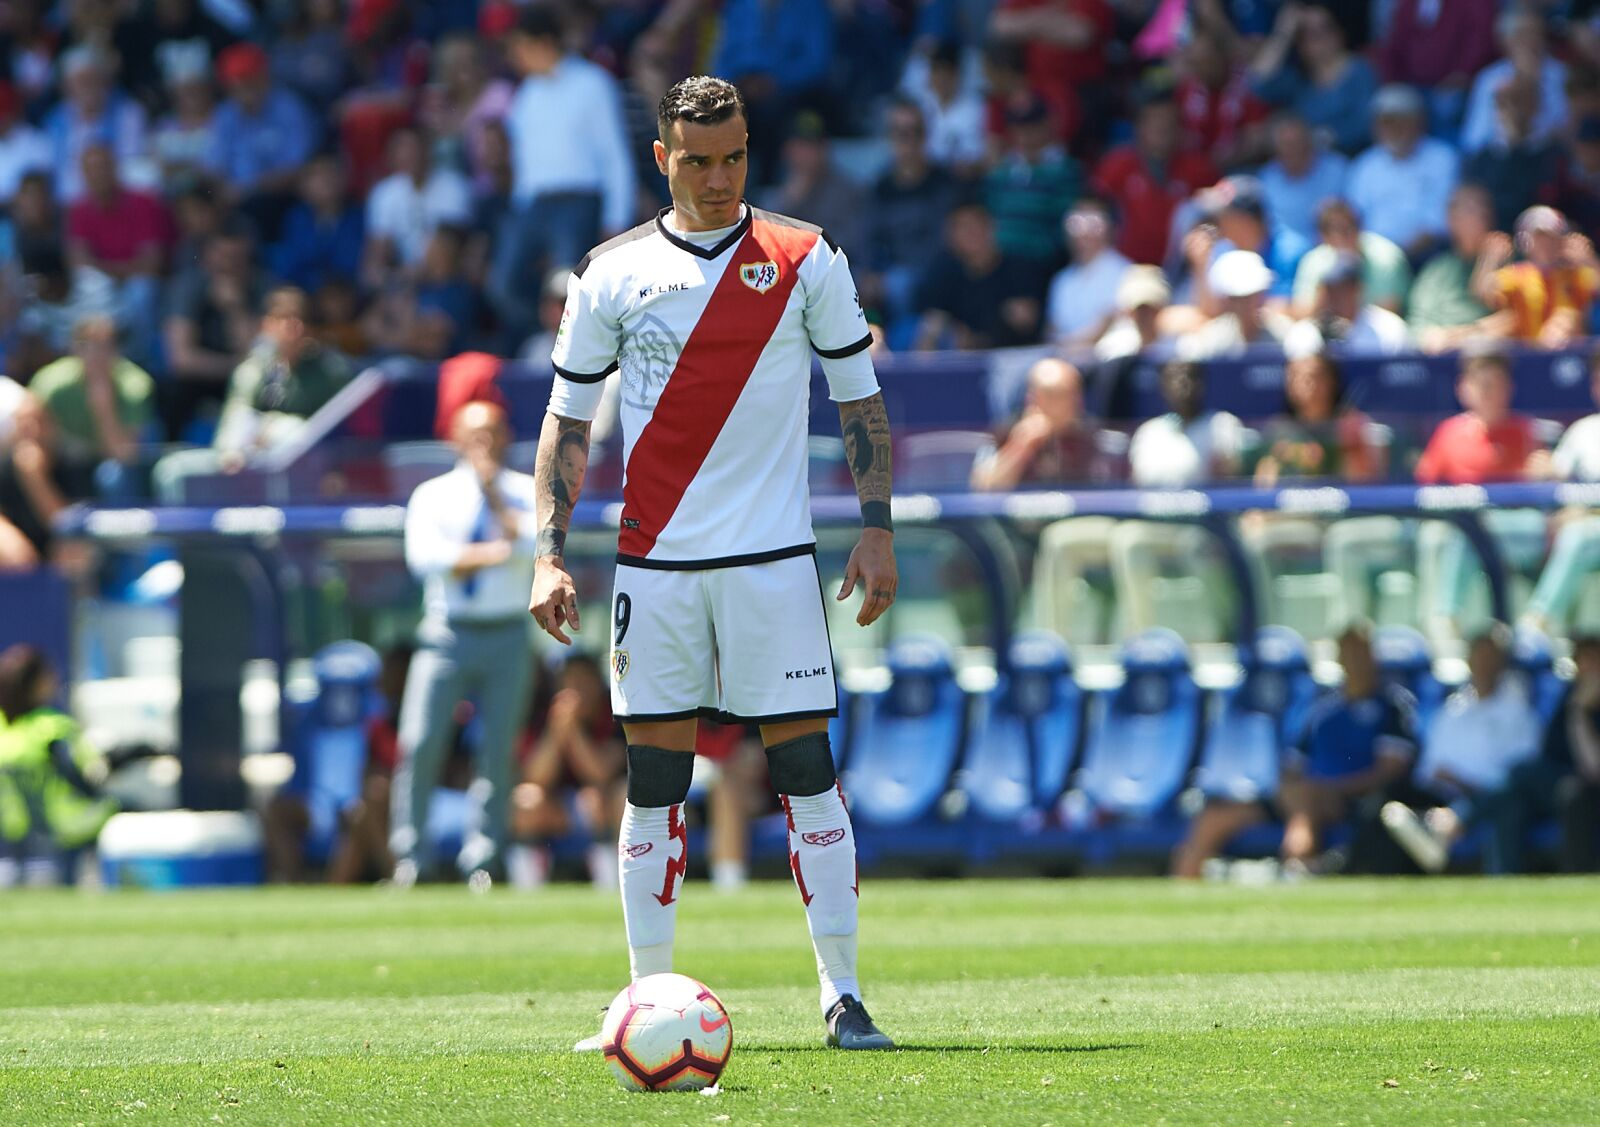 Raul de Tomas is ready for the Real Madrid first team